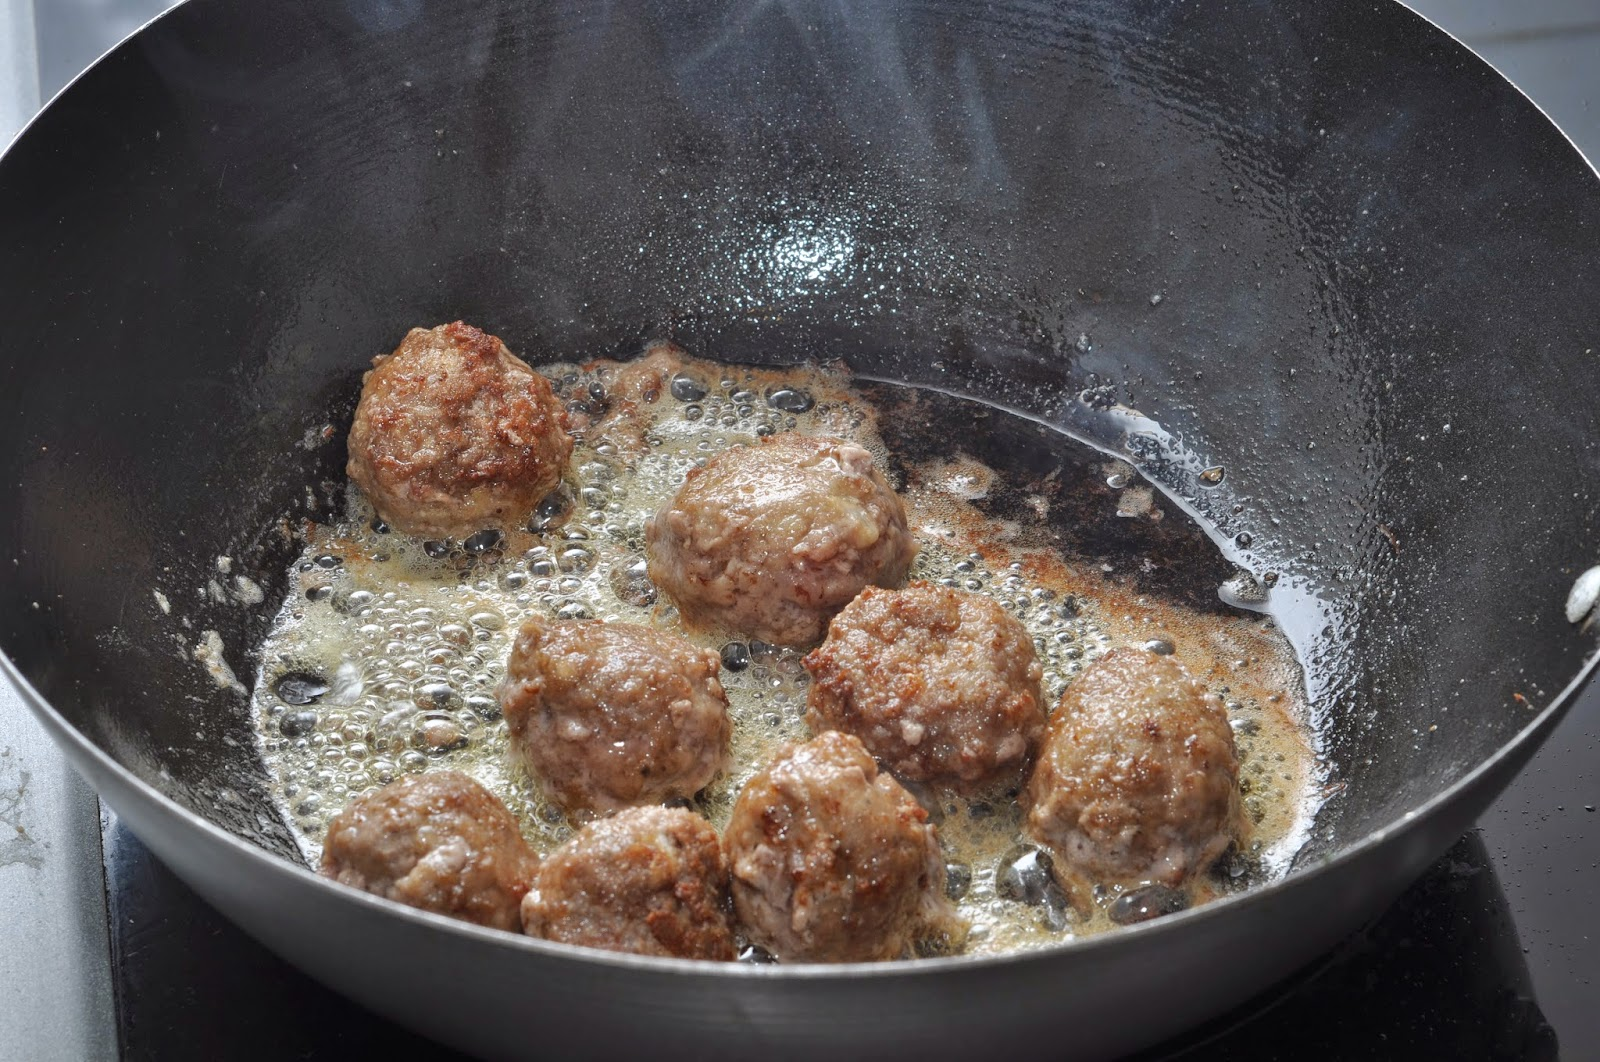 meatballs tony s way whole sunday sauce with way meatballs tony s way ...